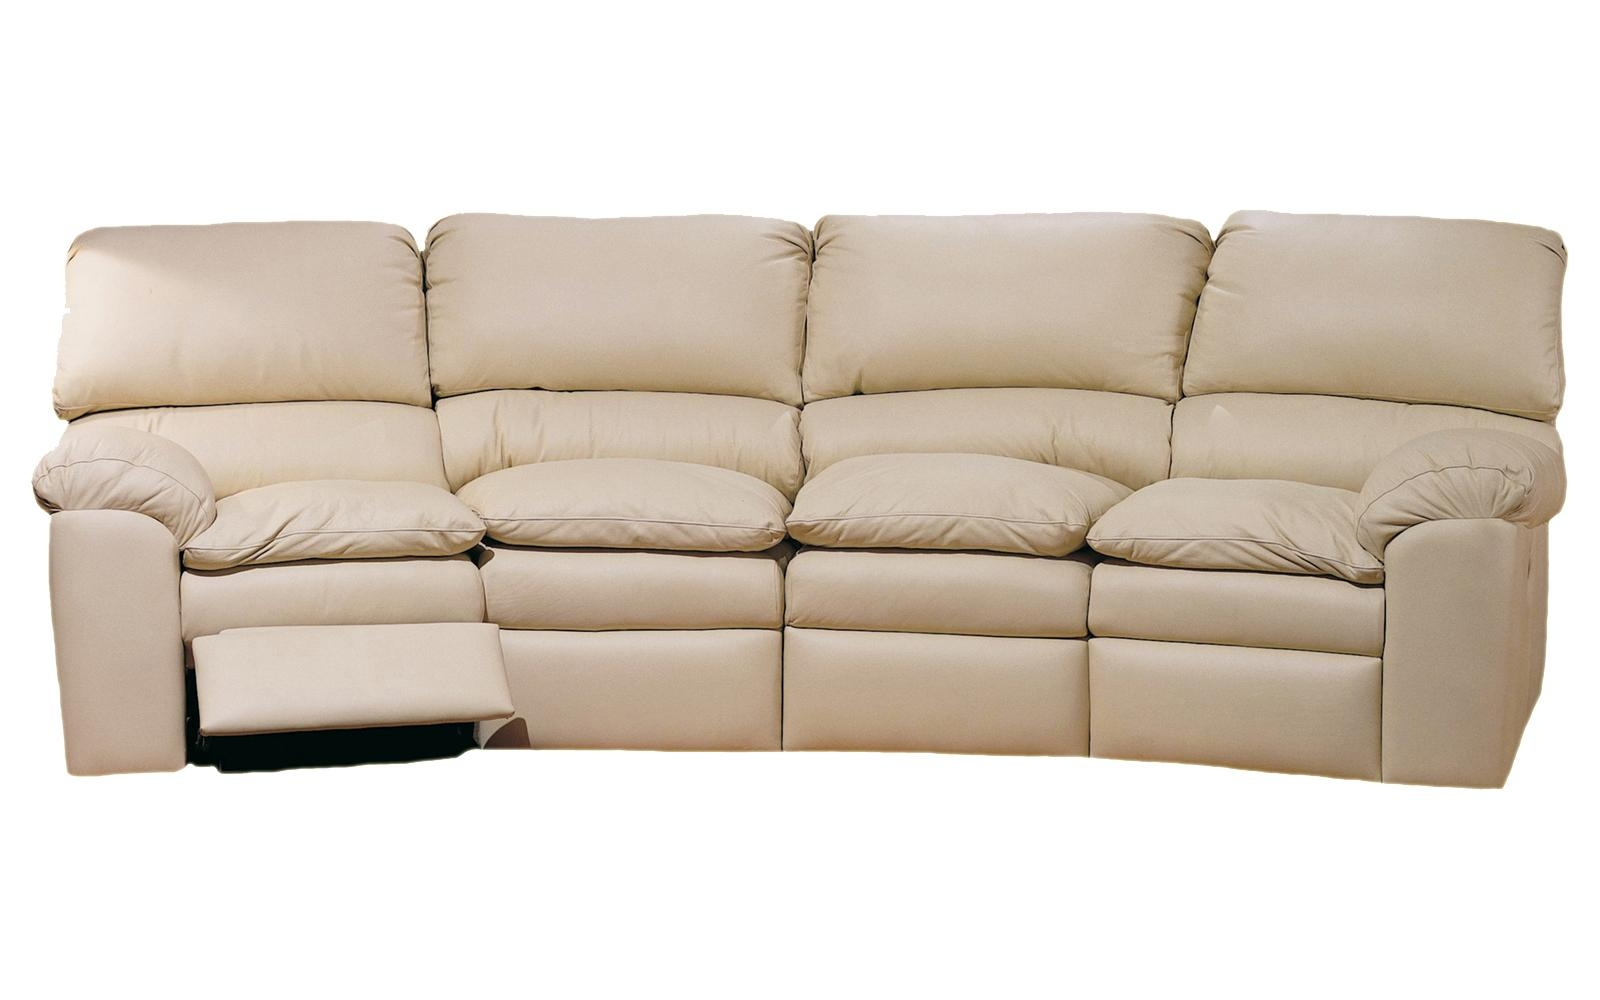 Catera 4 Seat Conversation Sofa – Omnia Leather In 4 Seat Sofas (Image 9 of 20)